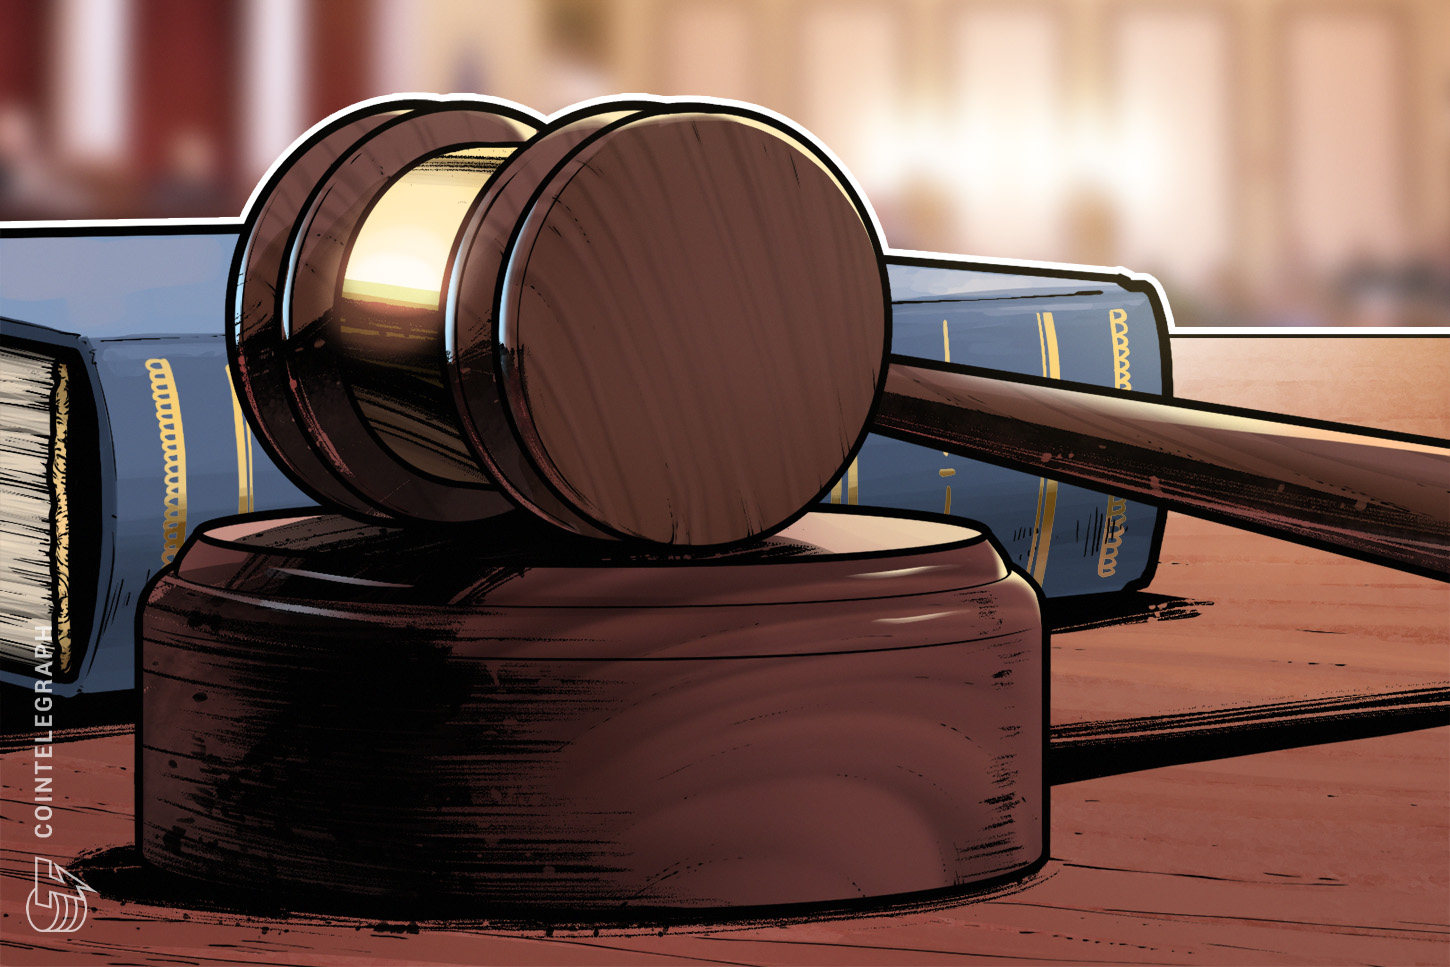 SolidX files <bold>lawsuit</bold> <bold>against</bold> VanEck alleging Bitcoin ETF 'plagiarism'